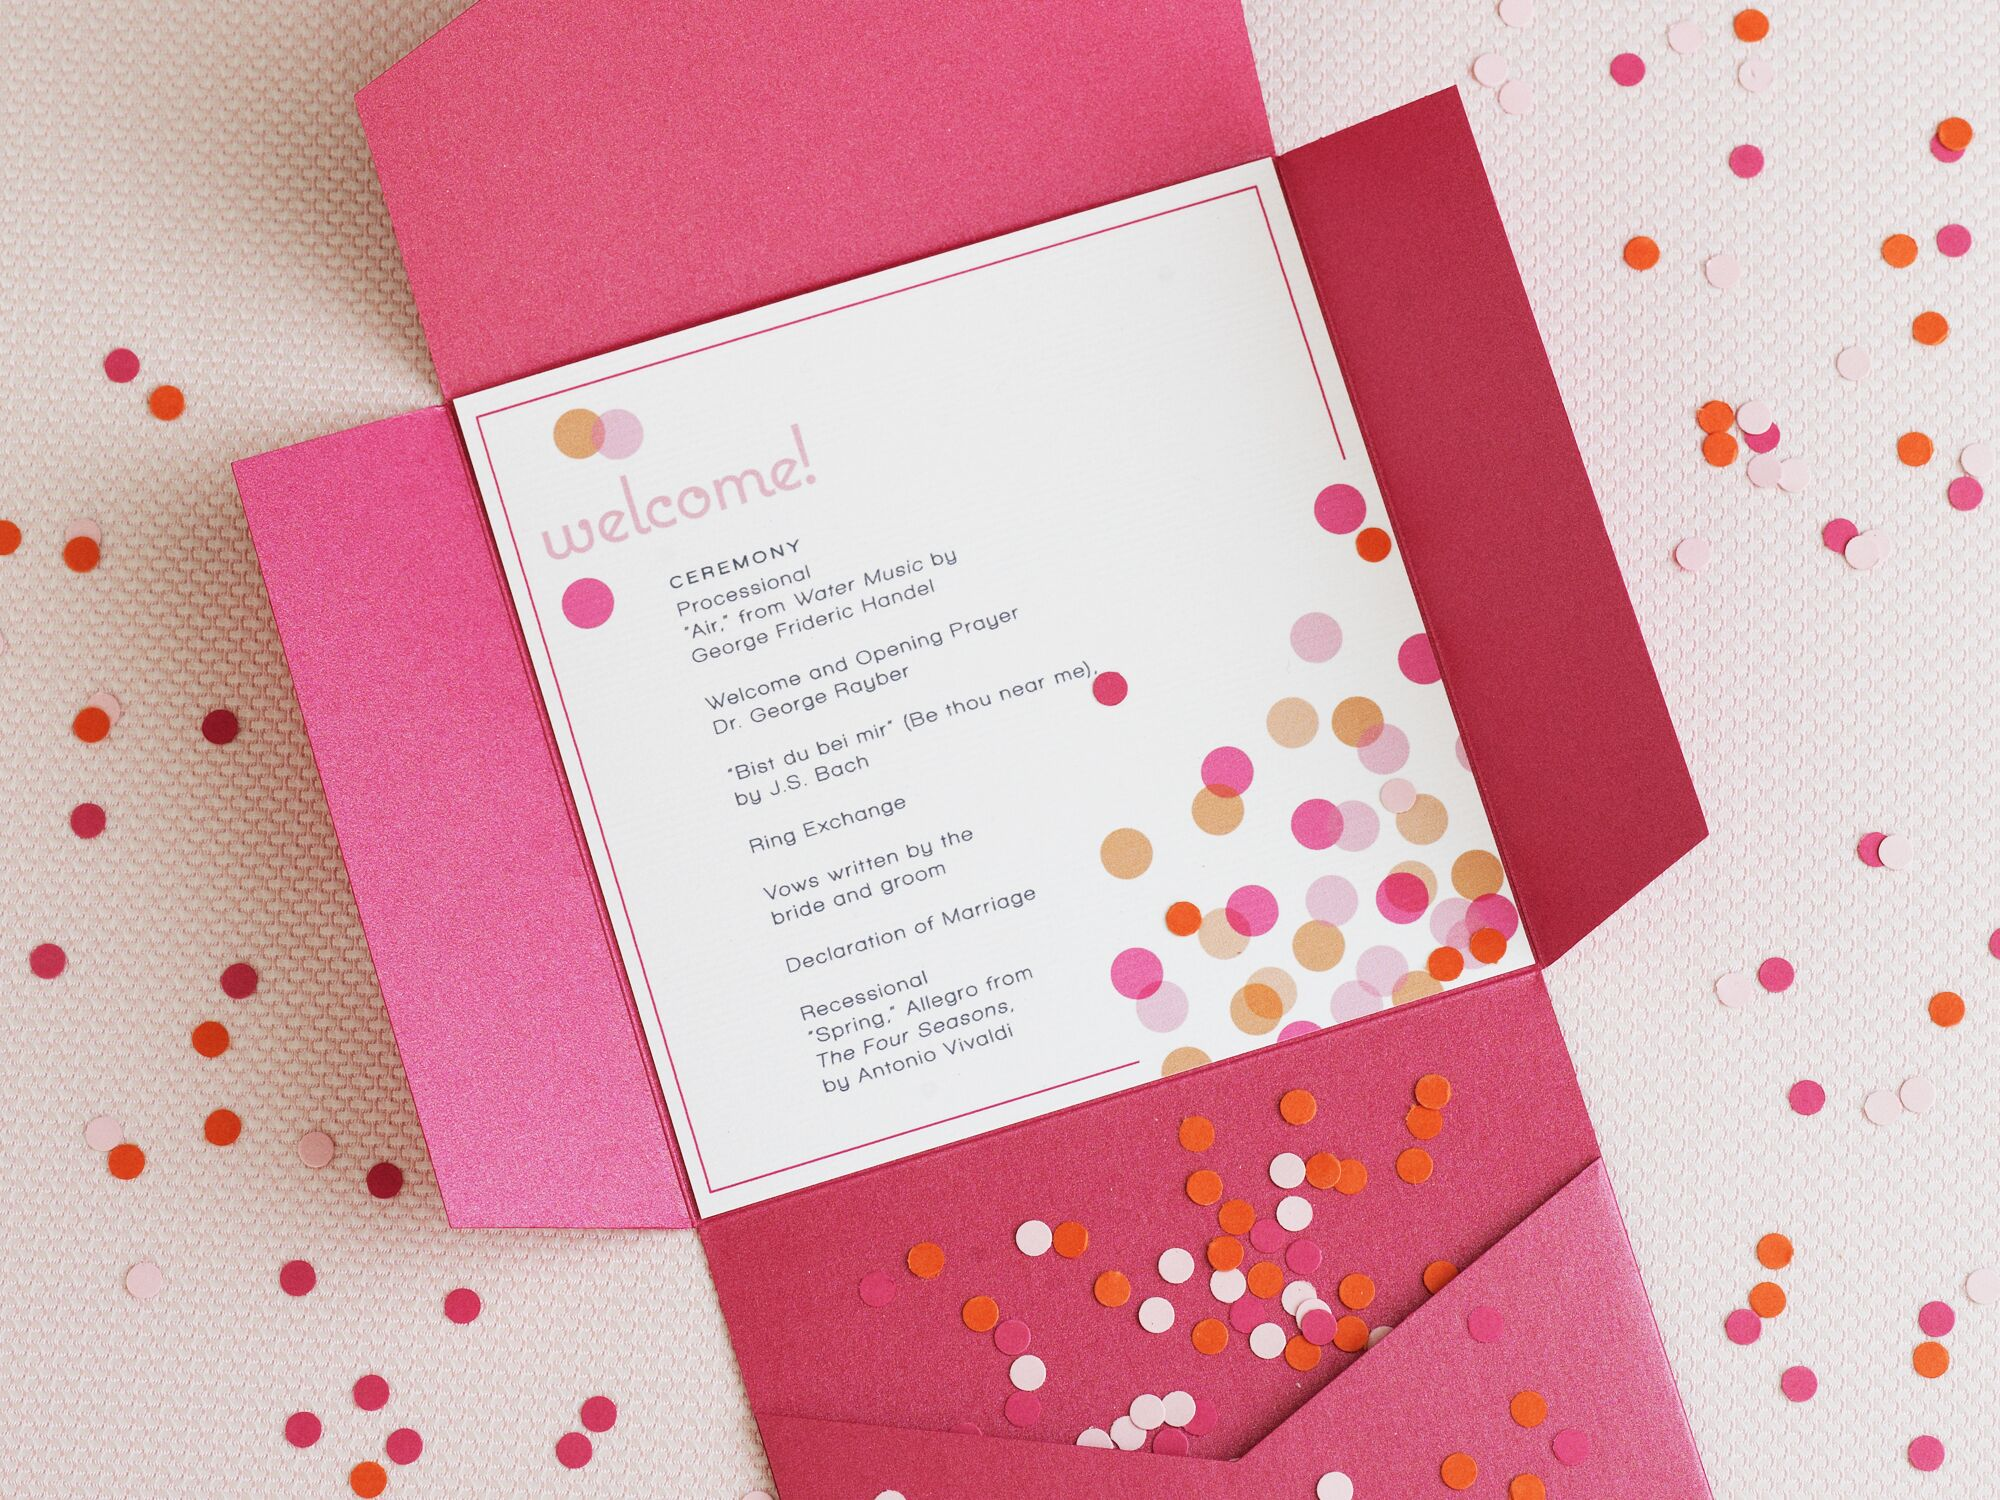 Save the Date Etiquette Tips – Email Wedding Save the Date